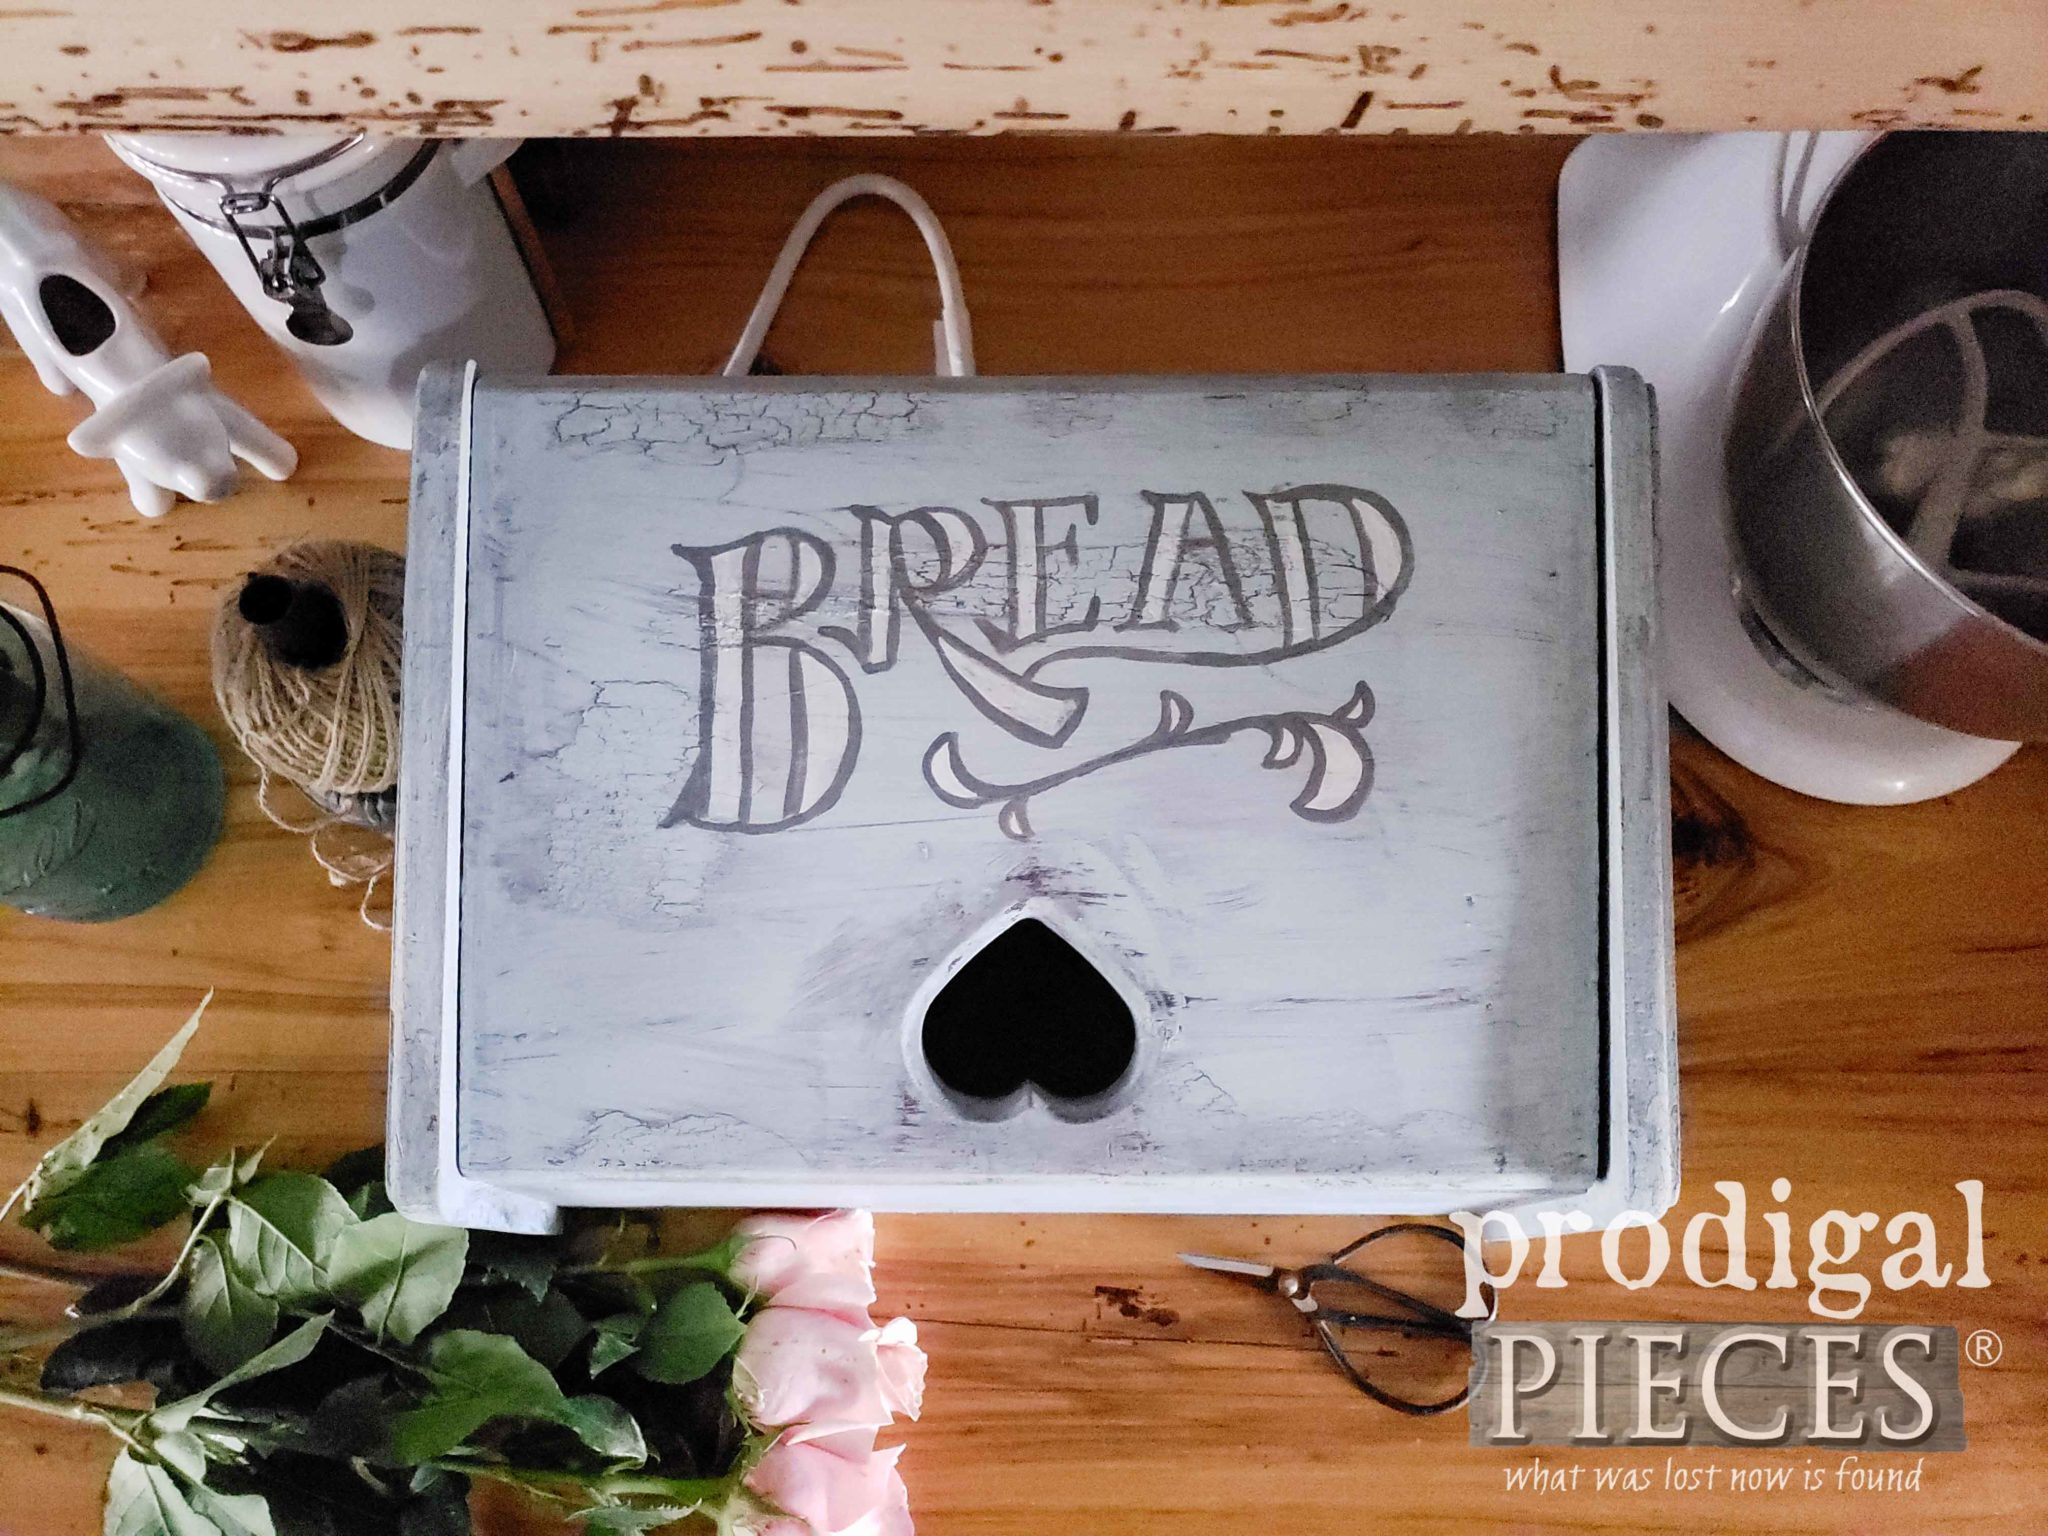 Cottage Chic Style Bread Box Turned DIY Charging Station by Larissa of Prodigal Pieces | Step-by-Step Tutorial by Larissa of Prodigal Pieces | prodigalpieces.com